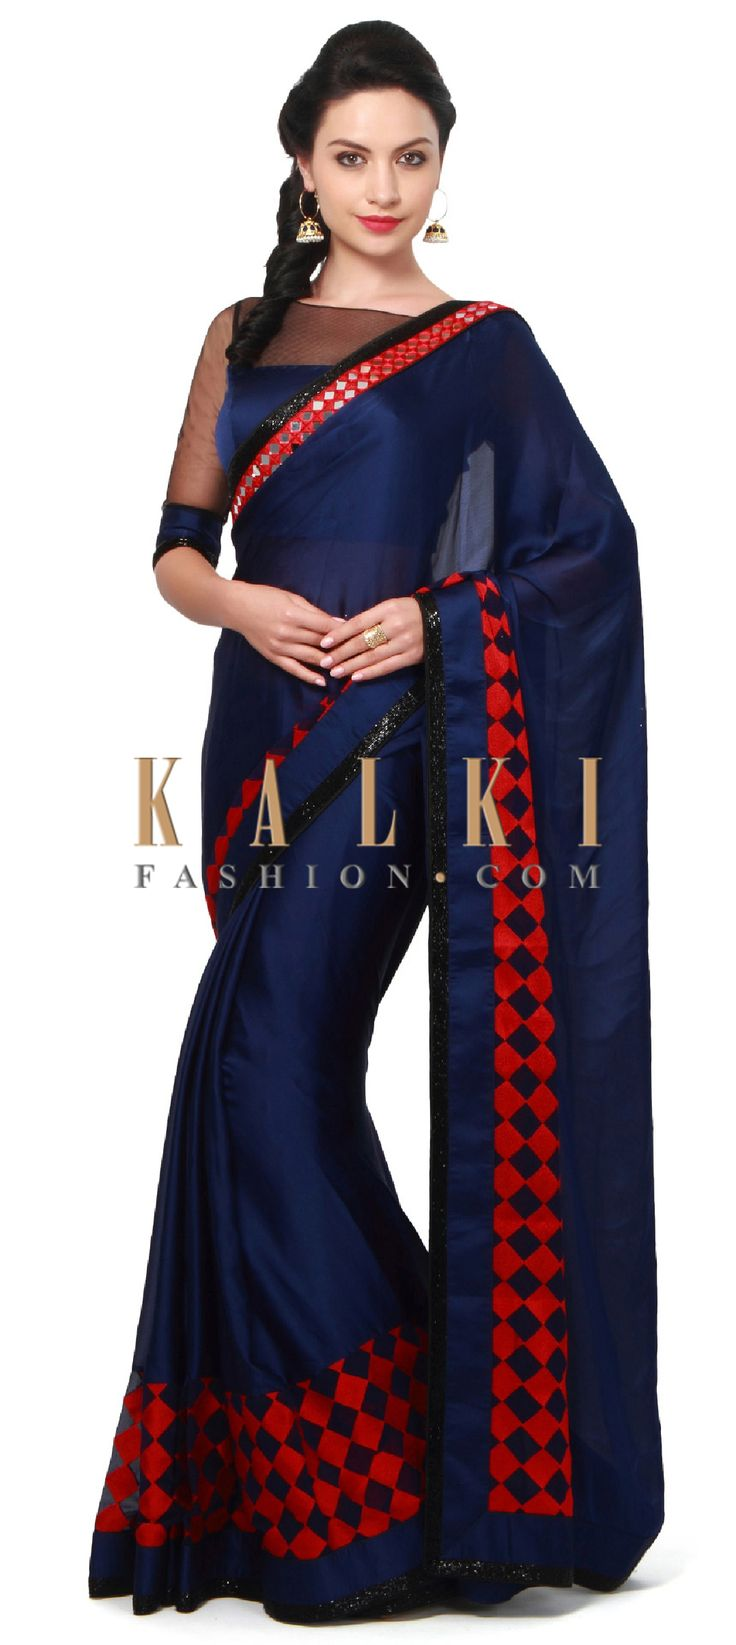 Buy Online from the link below. We ship worldwide (Free Shipping over US$100). Product SKU - 311441.Product Link - http://www.kalkifashion.com/navy-blue-saree-adorn-in-geometric-motif-embroidery-only-on-kalki.html